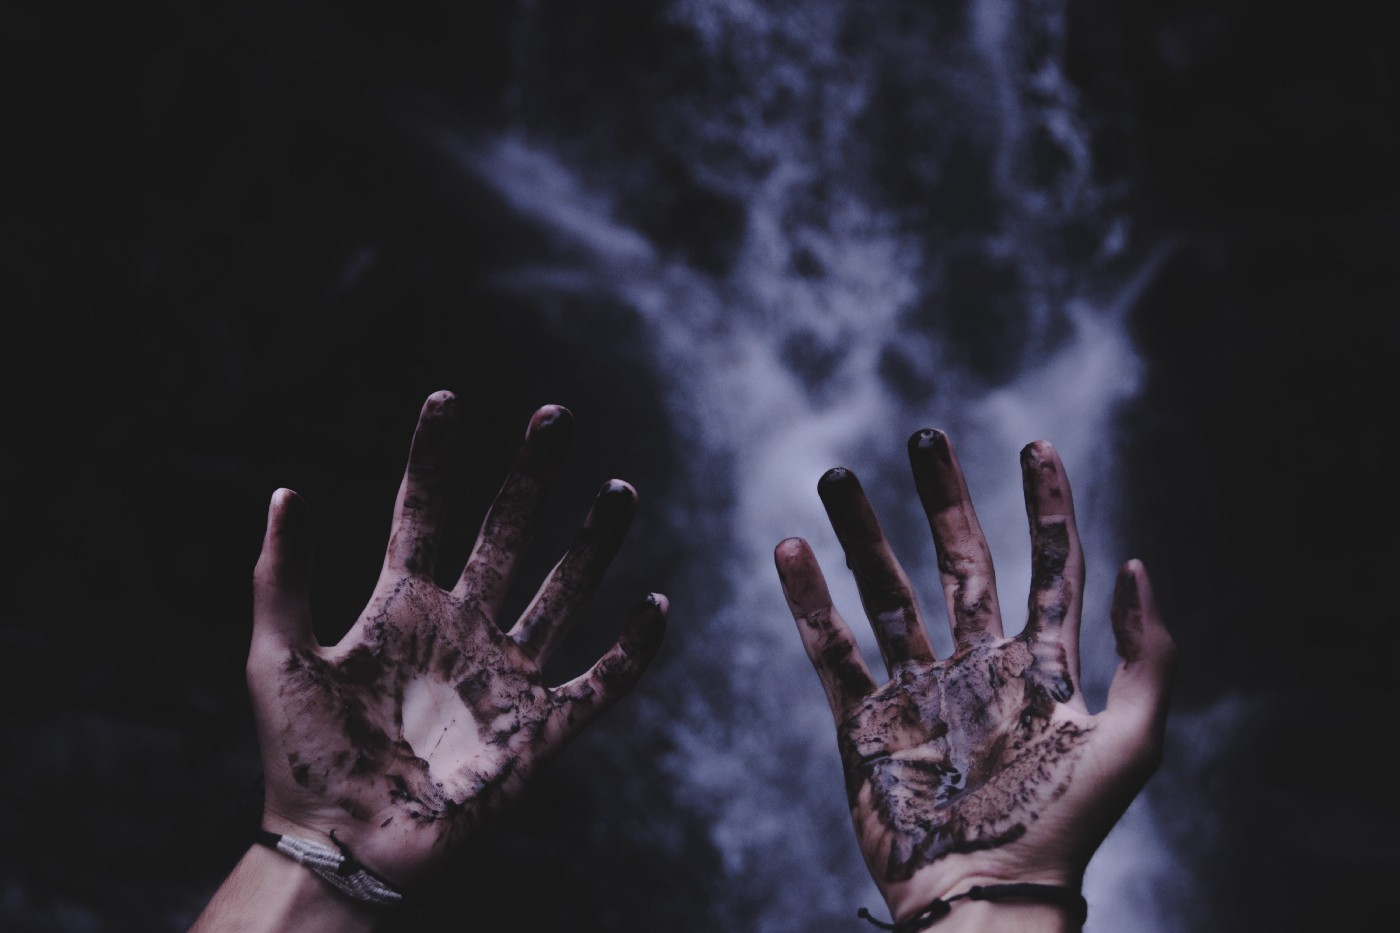 Two hands with palms facing upward with what appears to be a mixture of blood and mud on the hands, behind the hands are a black background with white fog on the background, has an ominus tone to it